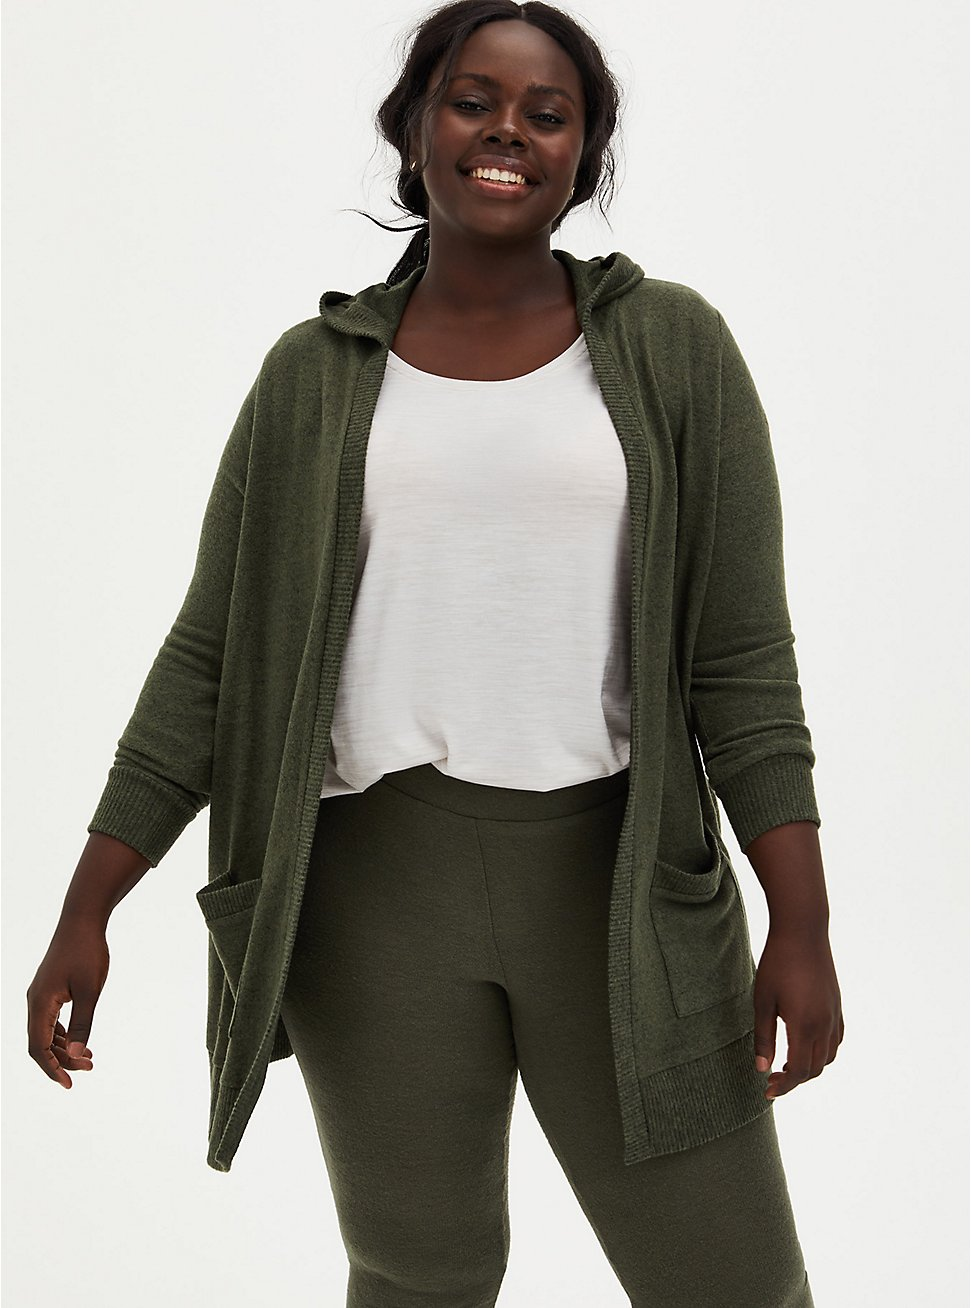 Super Soft Plush Olive Green Hooded Cardigan, DEEP DEPTHS, hi-res